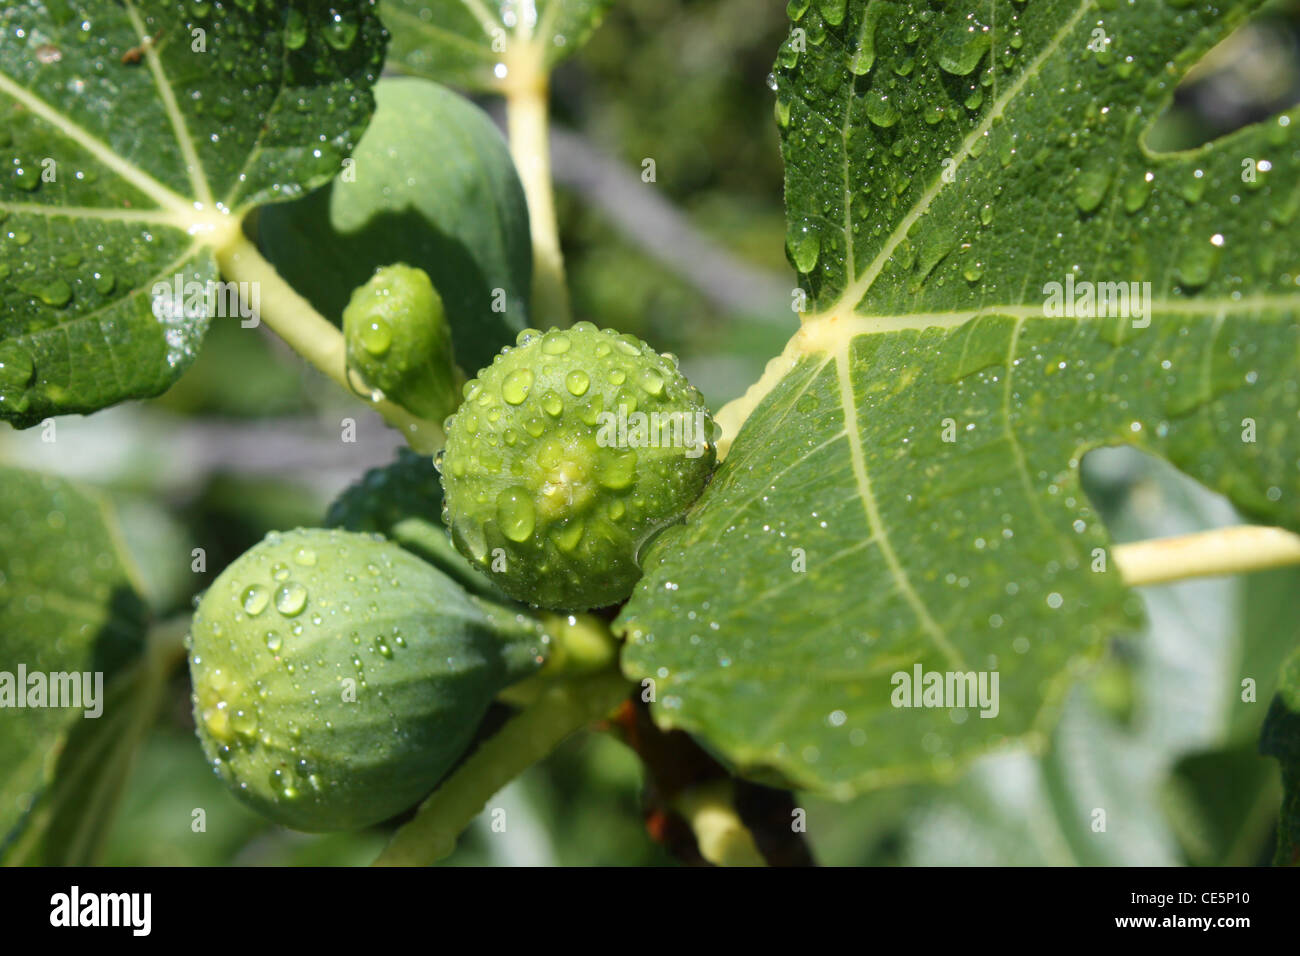 Figs on tree after rain - Stock Image